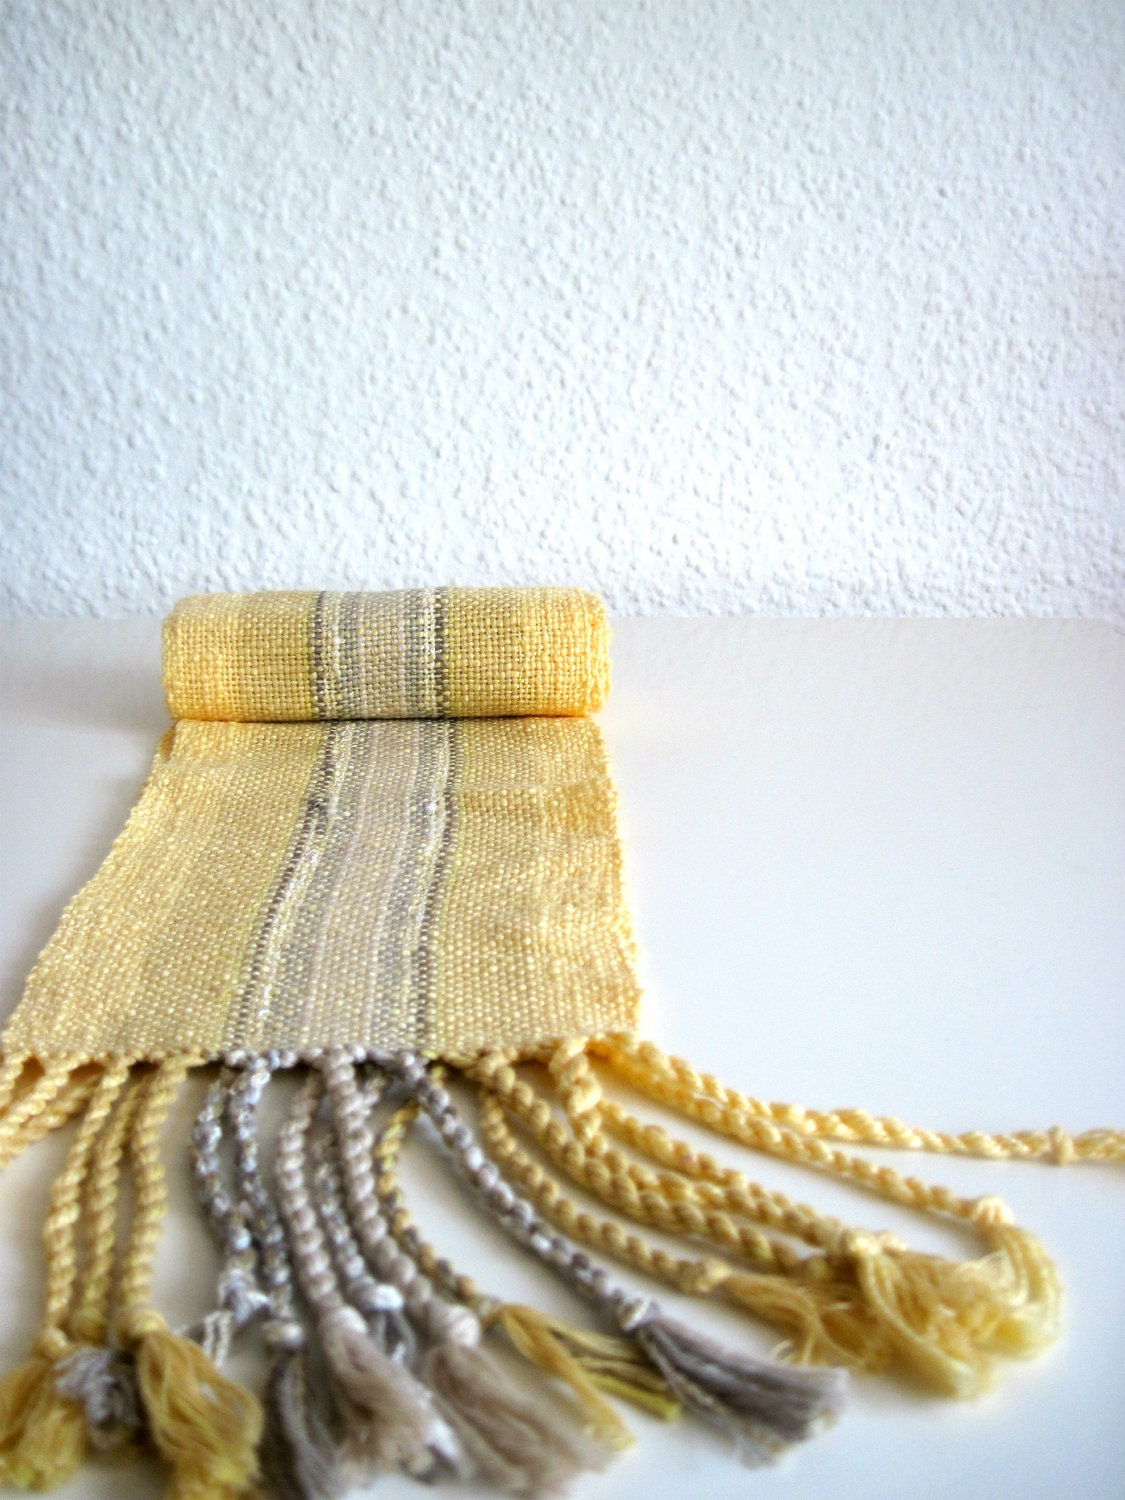 Handwoven Scarf 'Light and Simple' - SameheartDesigns